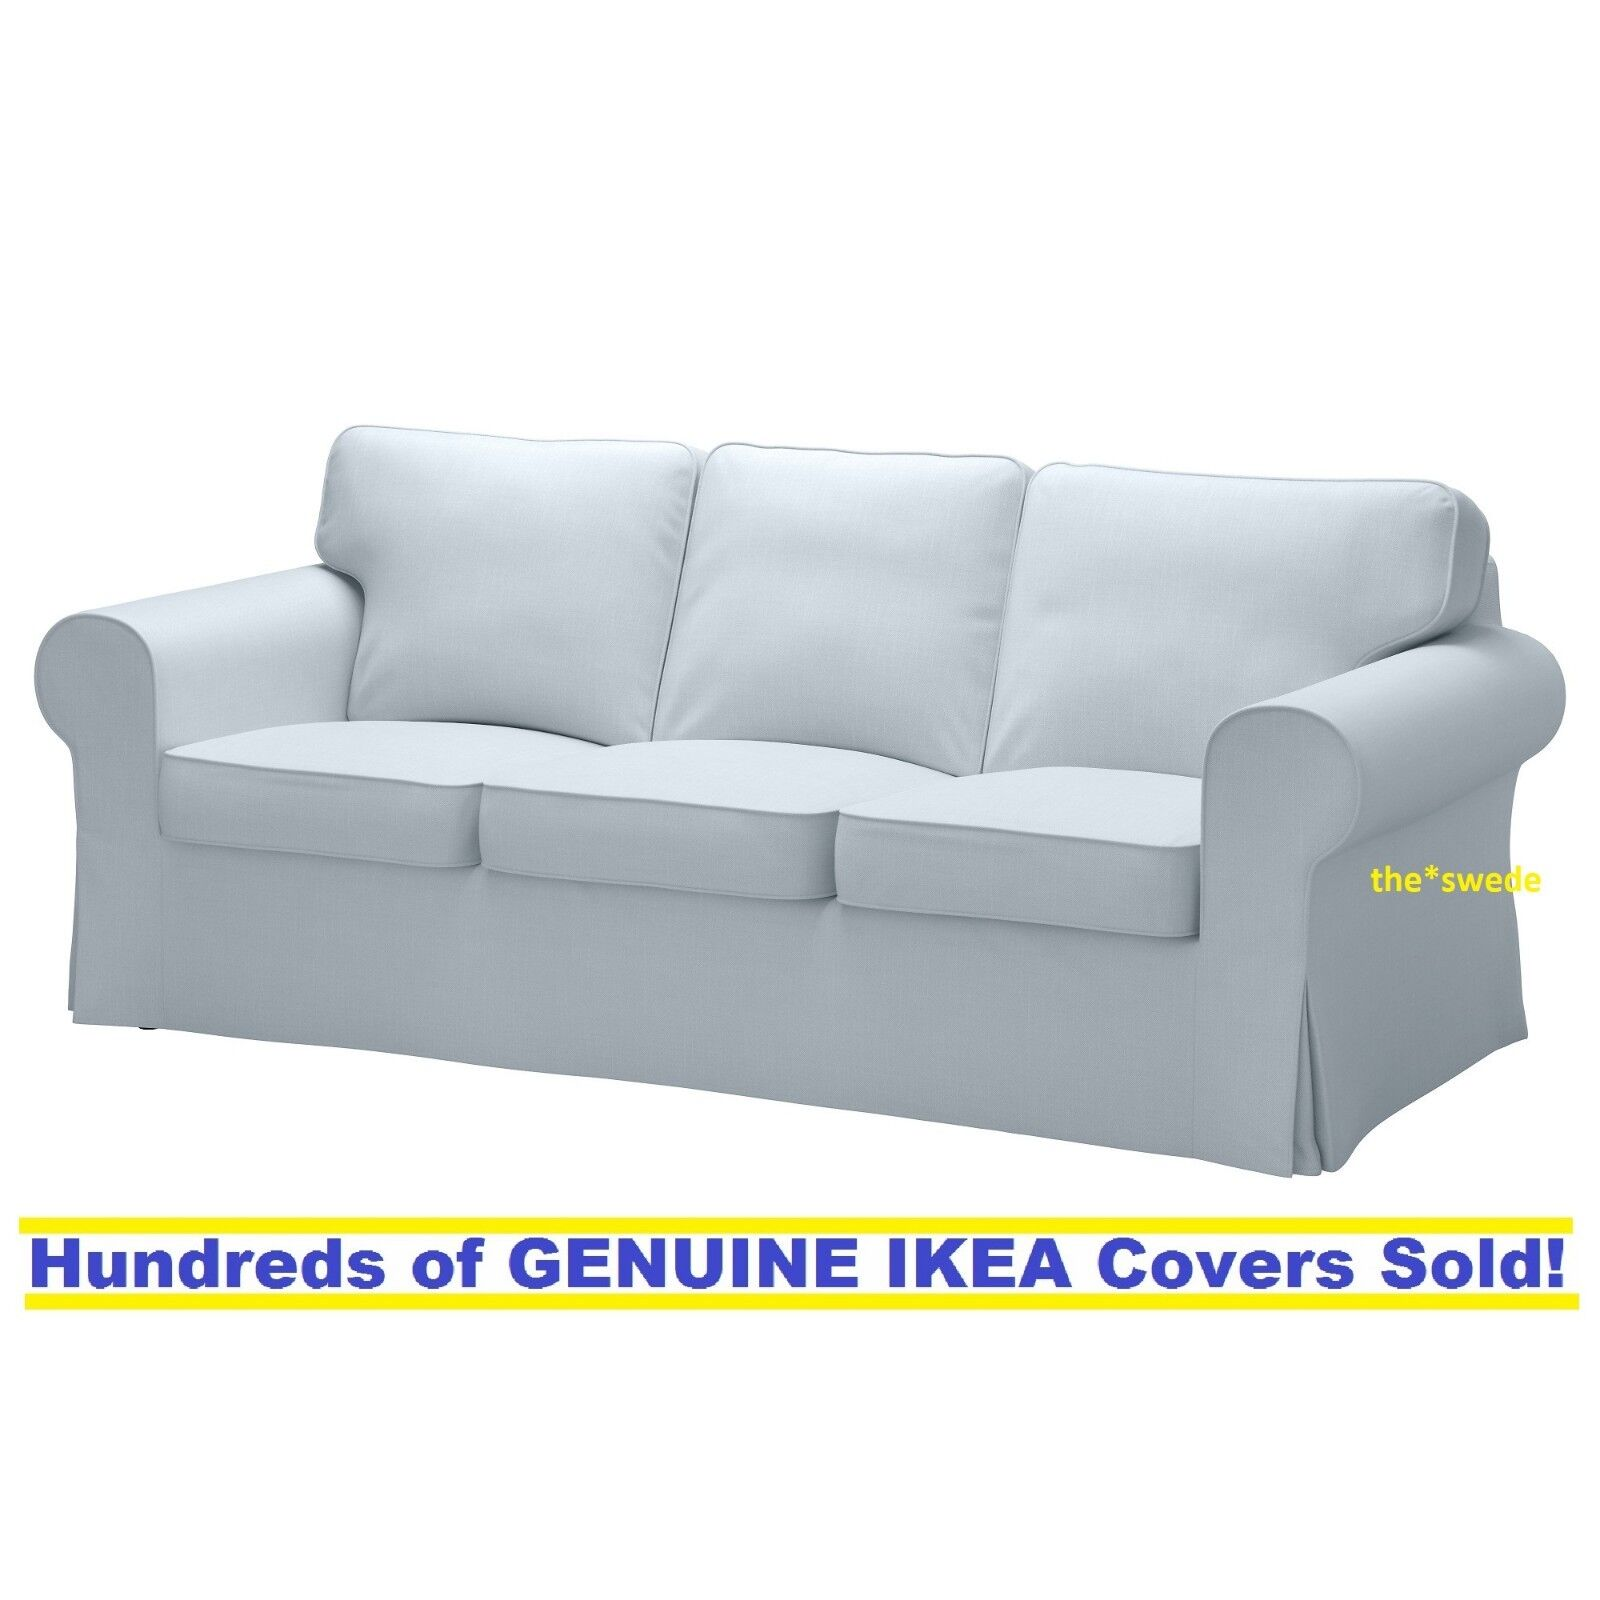 Parts of IKEA EKTORP Loveseat Cover Jonsboda Blue One Slipcover part see select